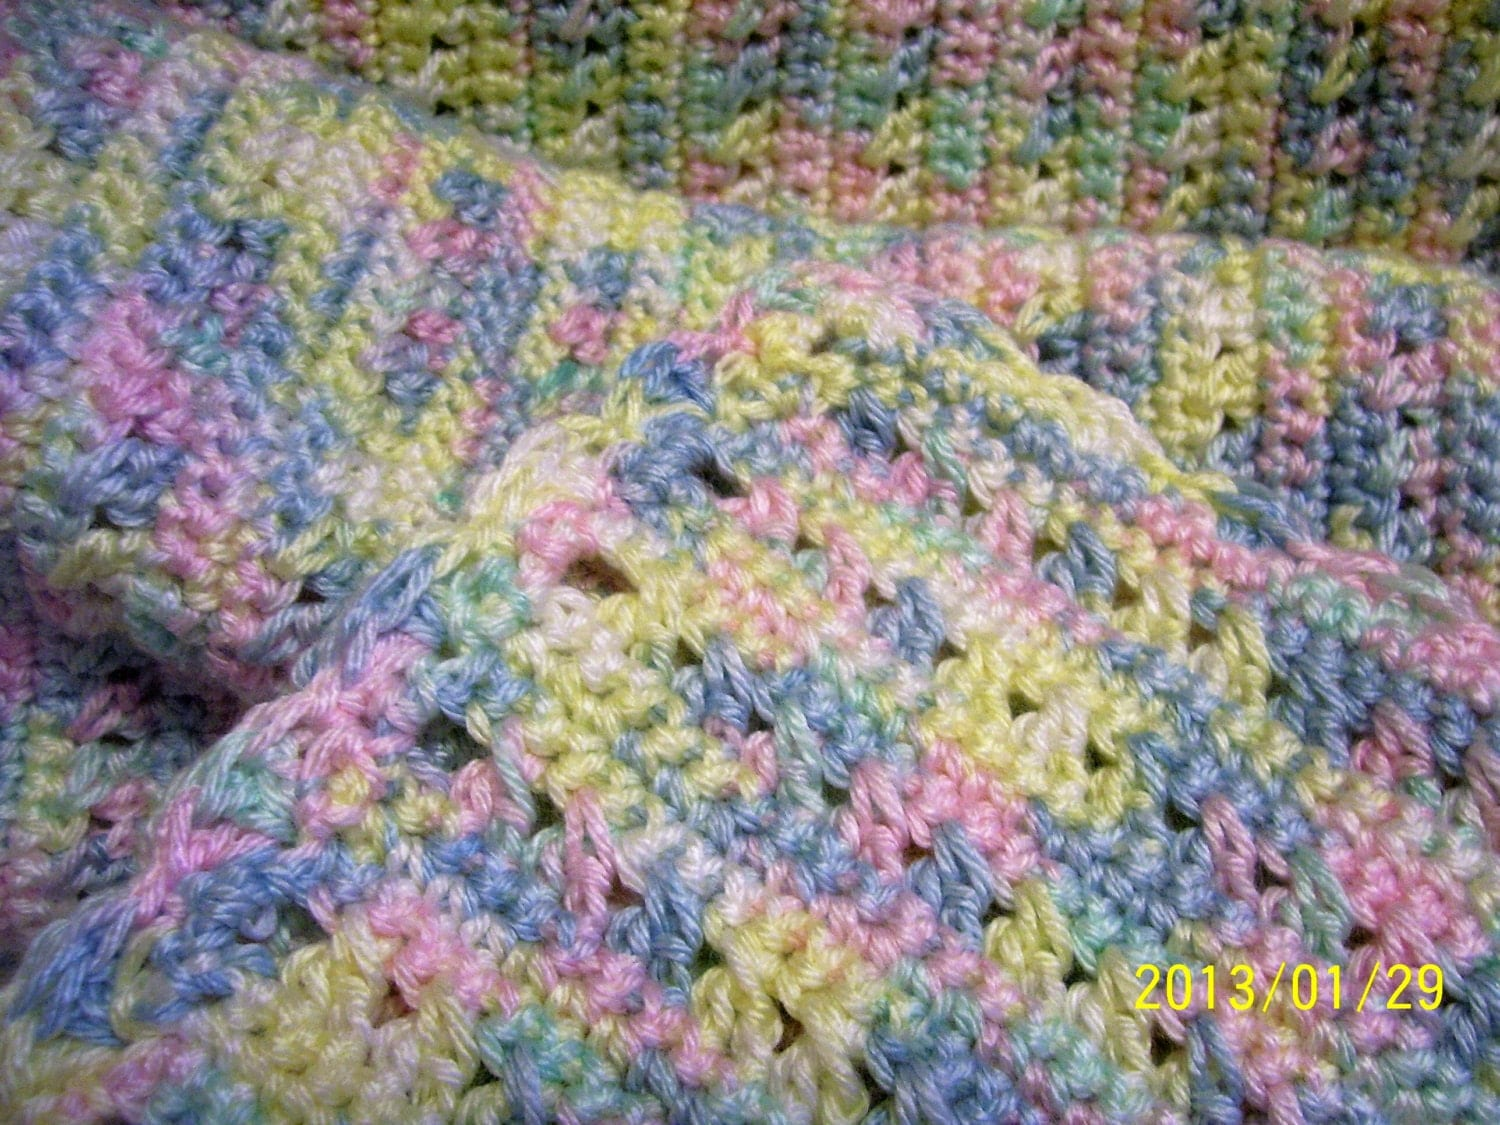 Crochet Afghan Patterns With Variegated Yarn : baby afghan hand crochet 36 42 variegated by mummeeinna